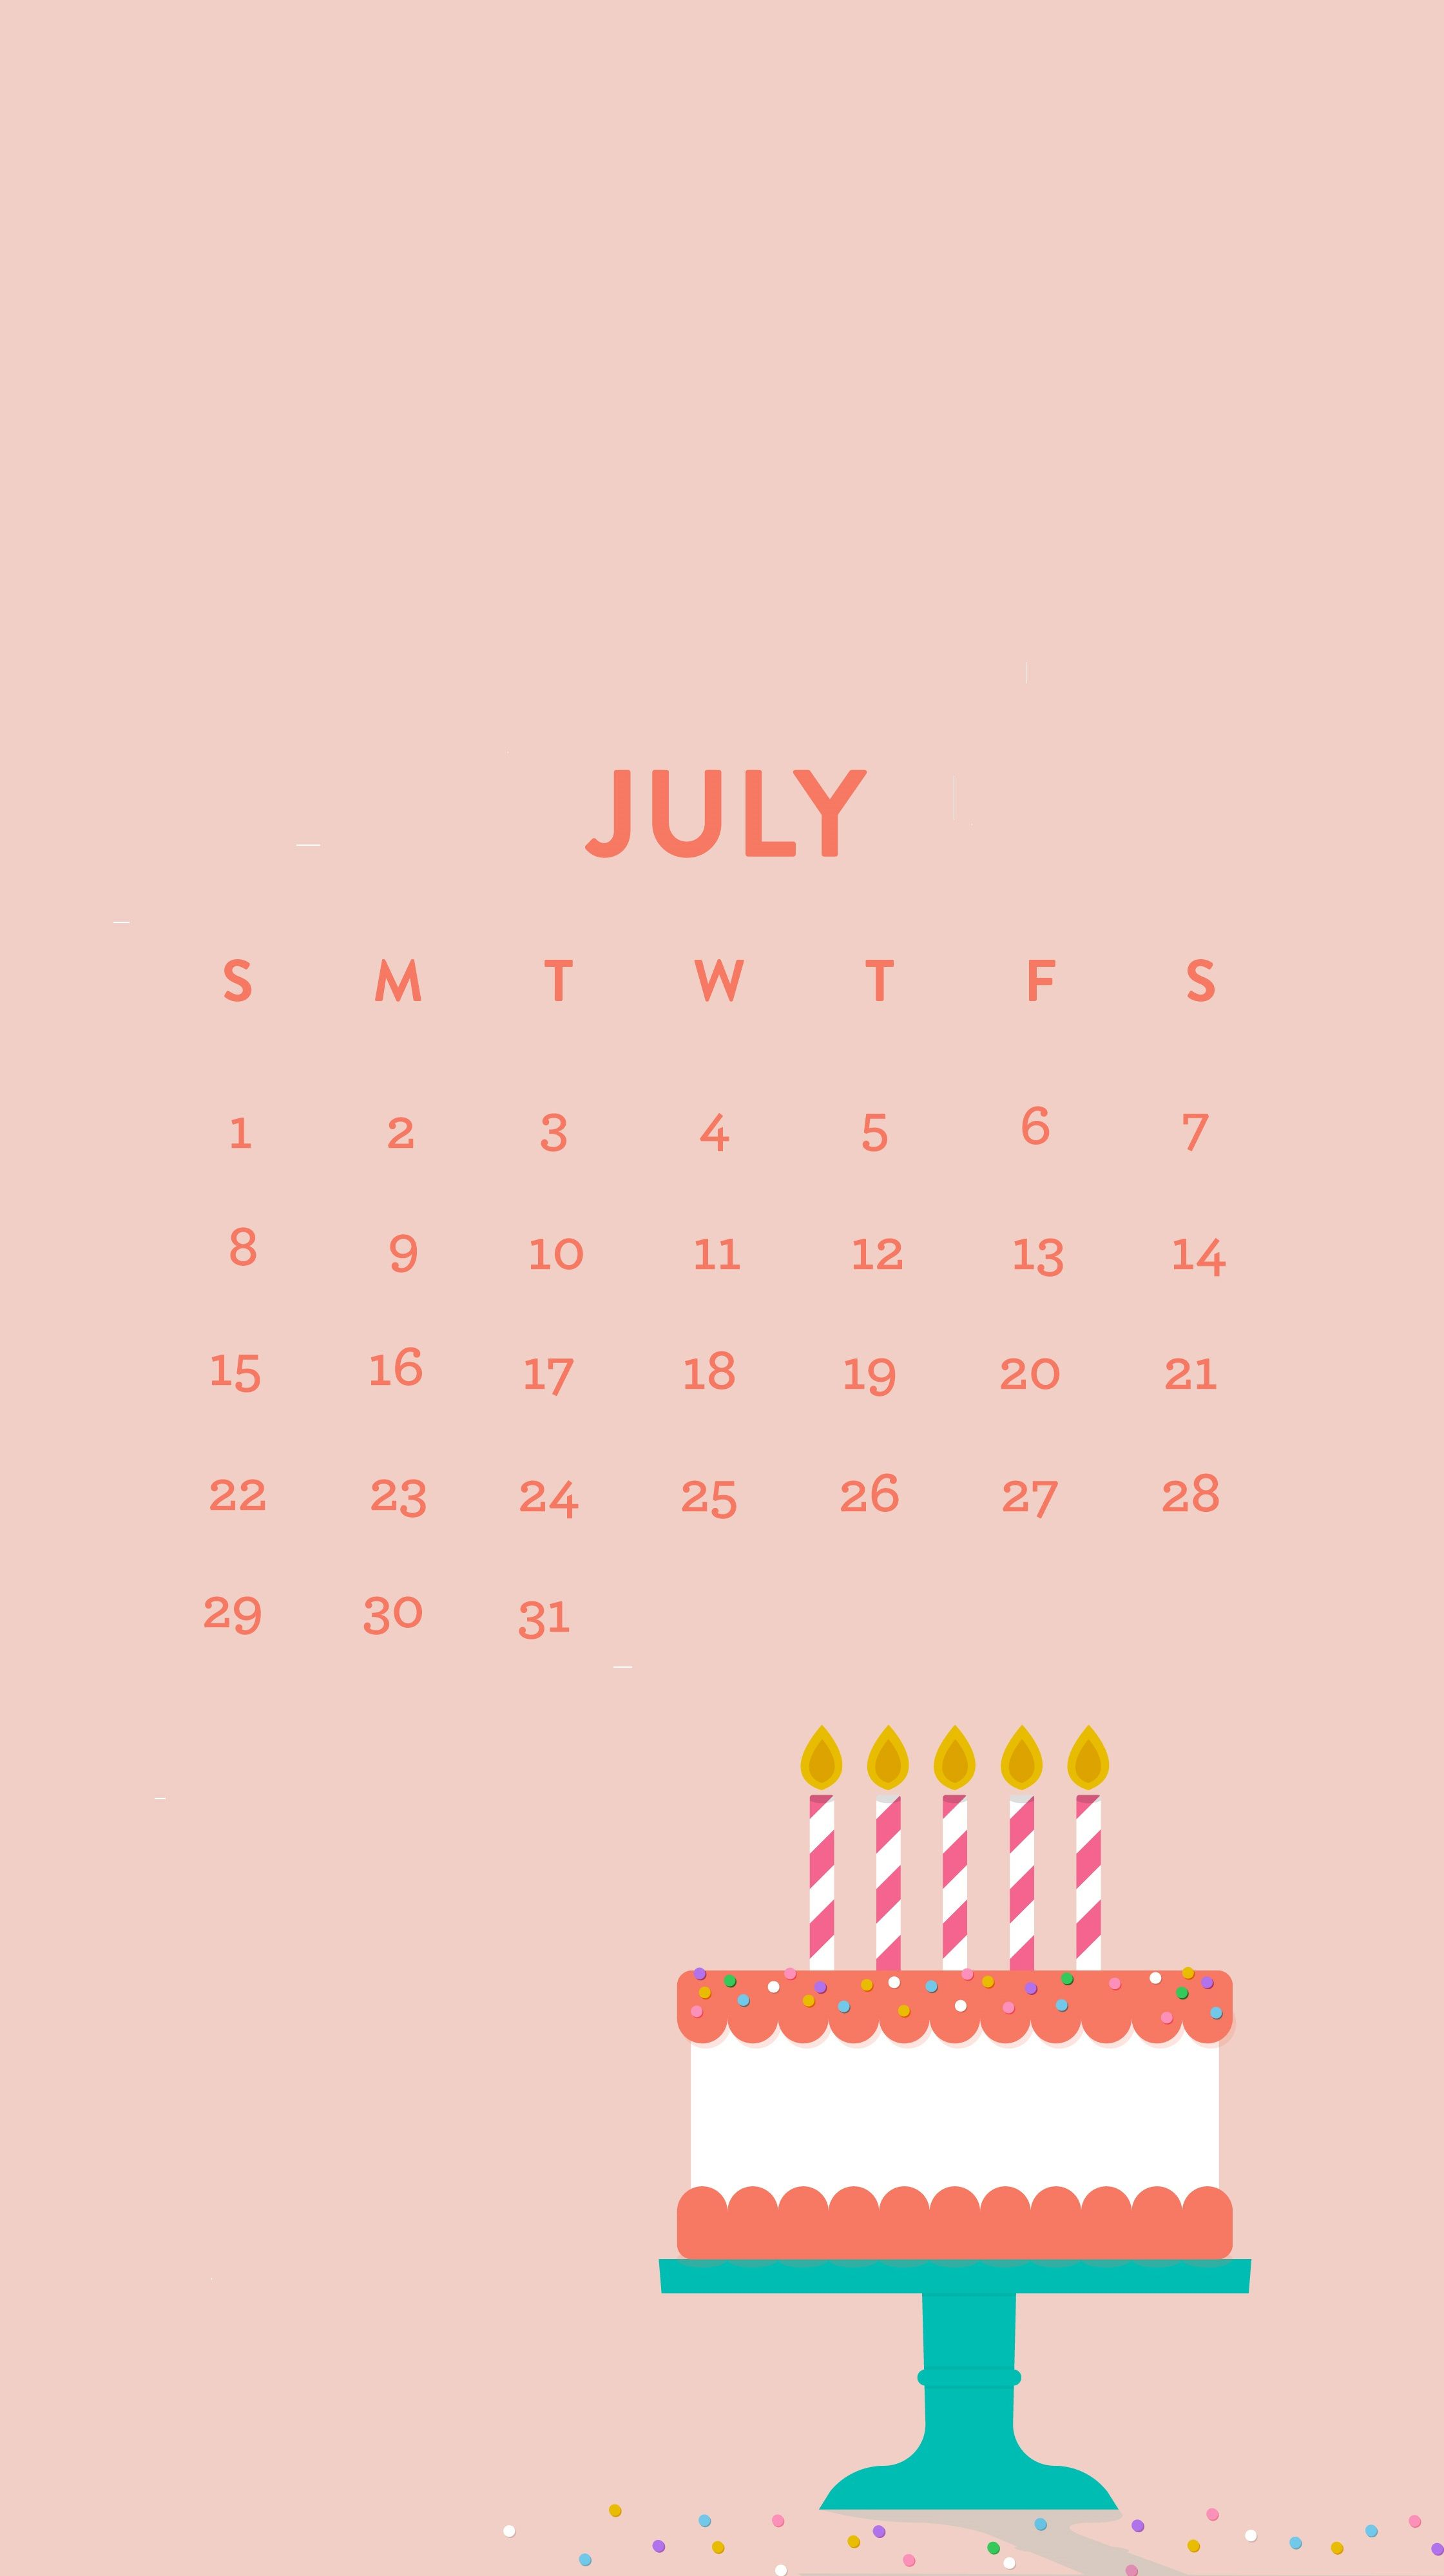 Calendar Wallpaper For Iphone : Free july iphone calendar wallpapers